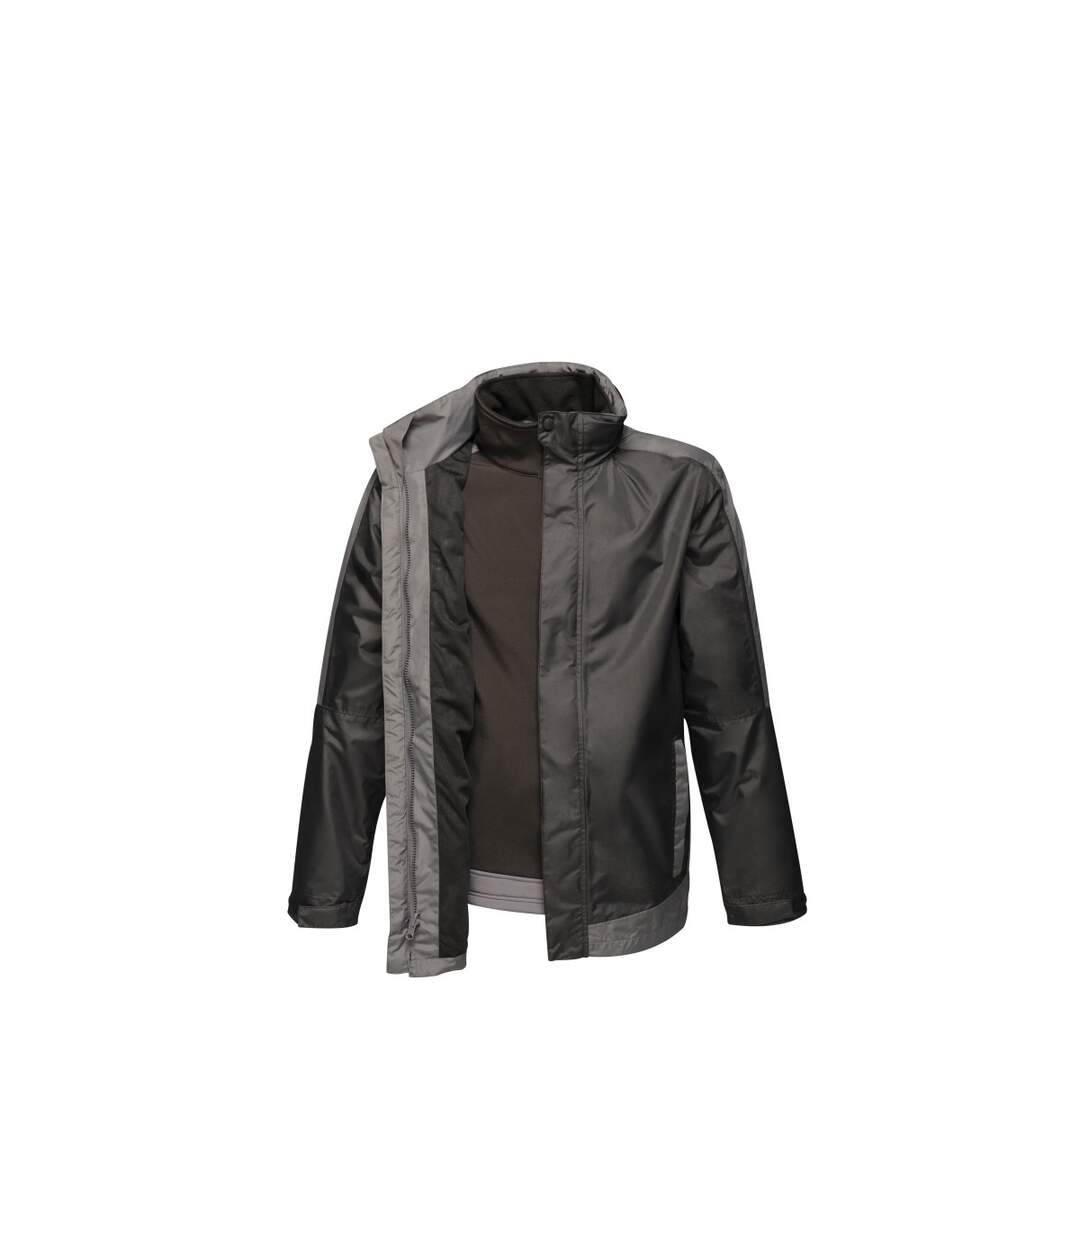 Regatta Mens Contrast 3 In 1 Jacket (Black/Seal Grey) - UTRG4095